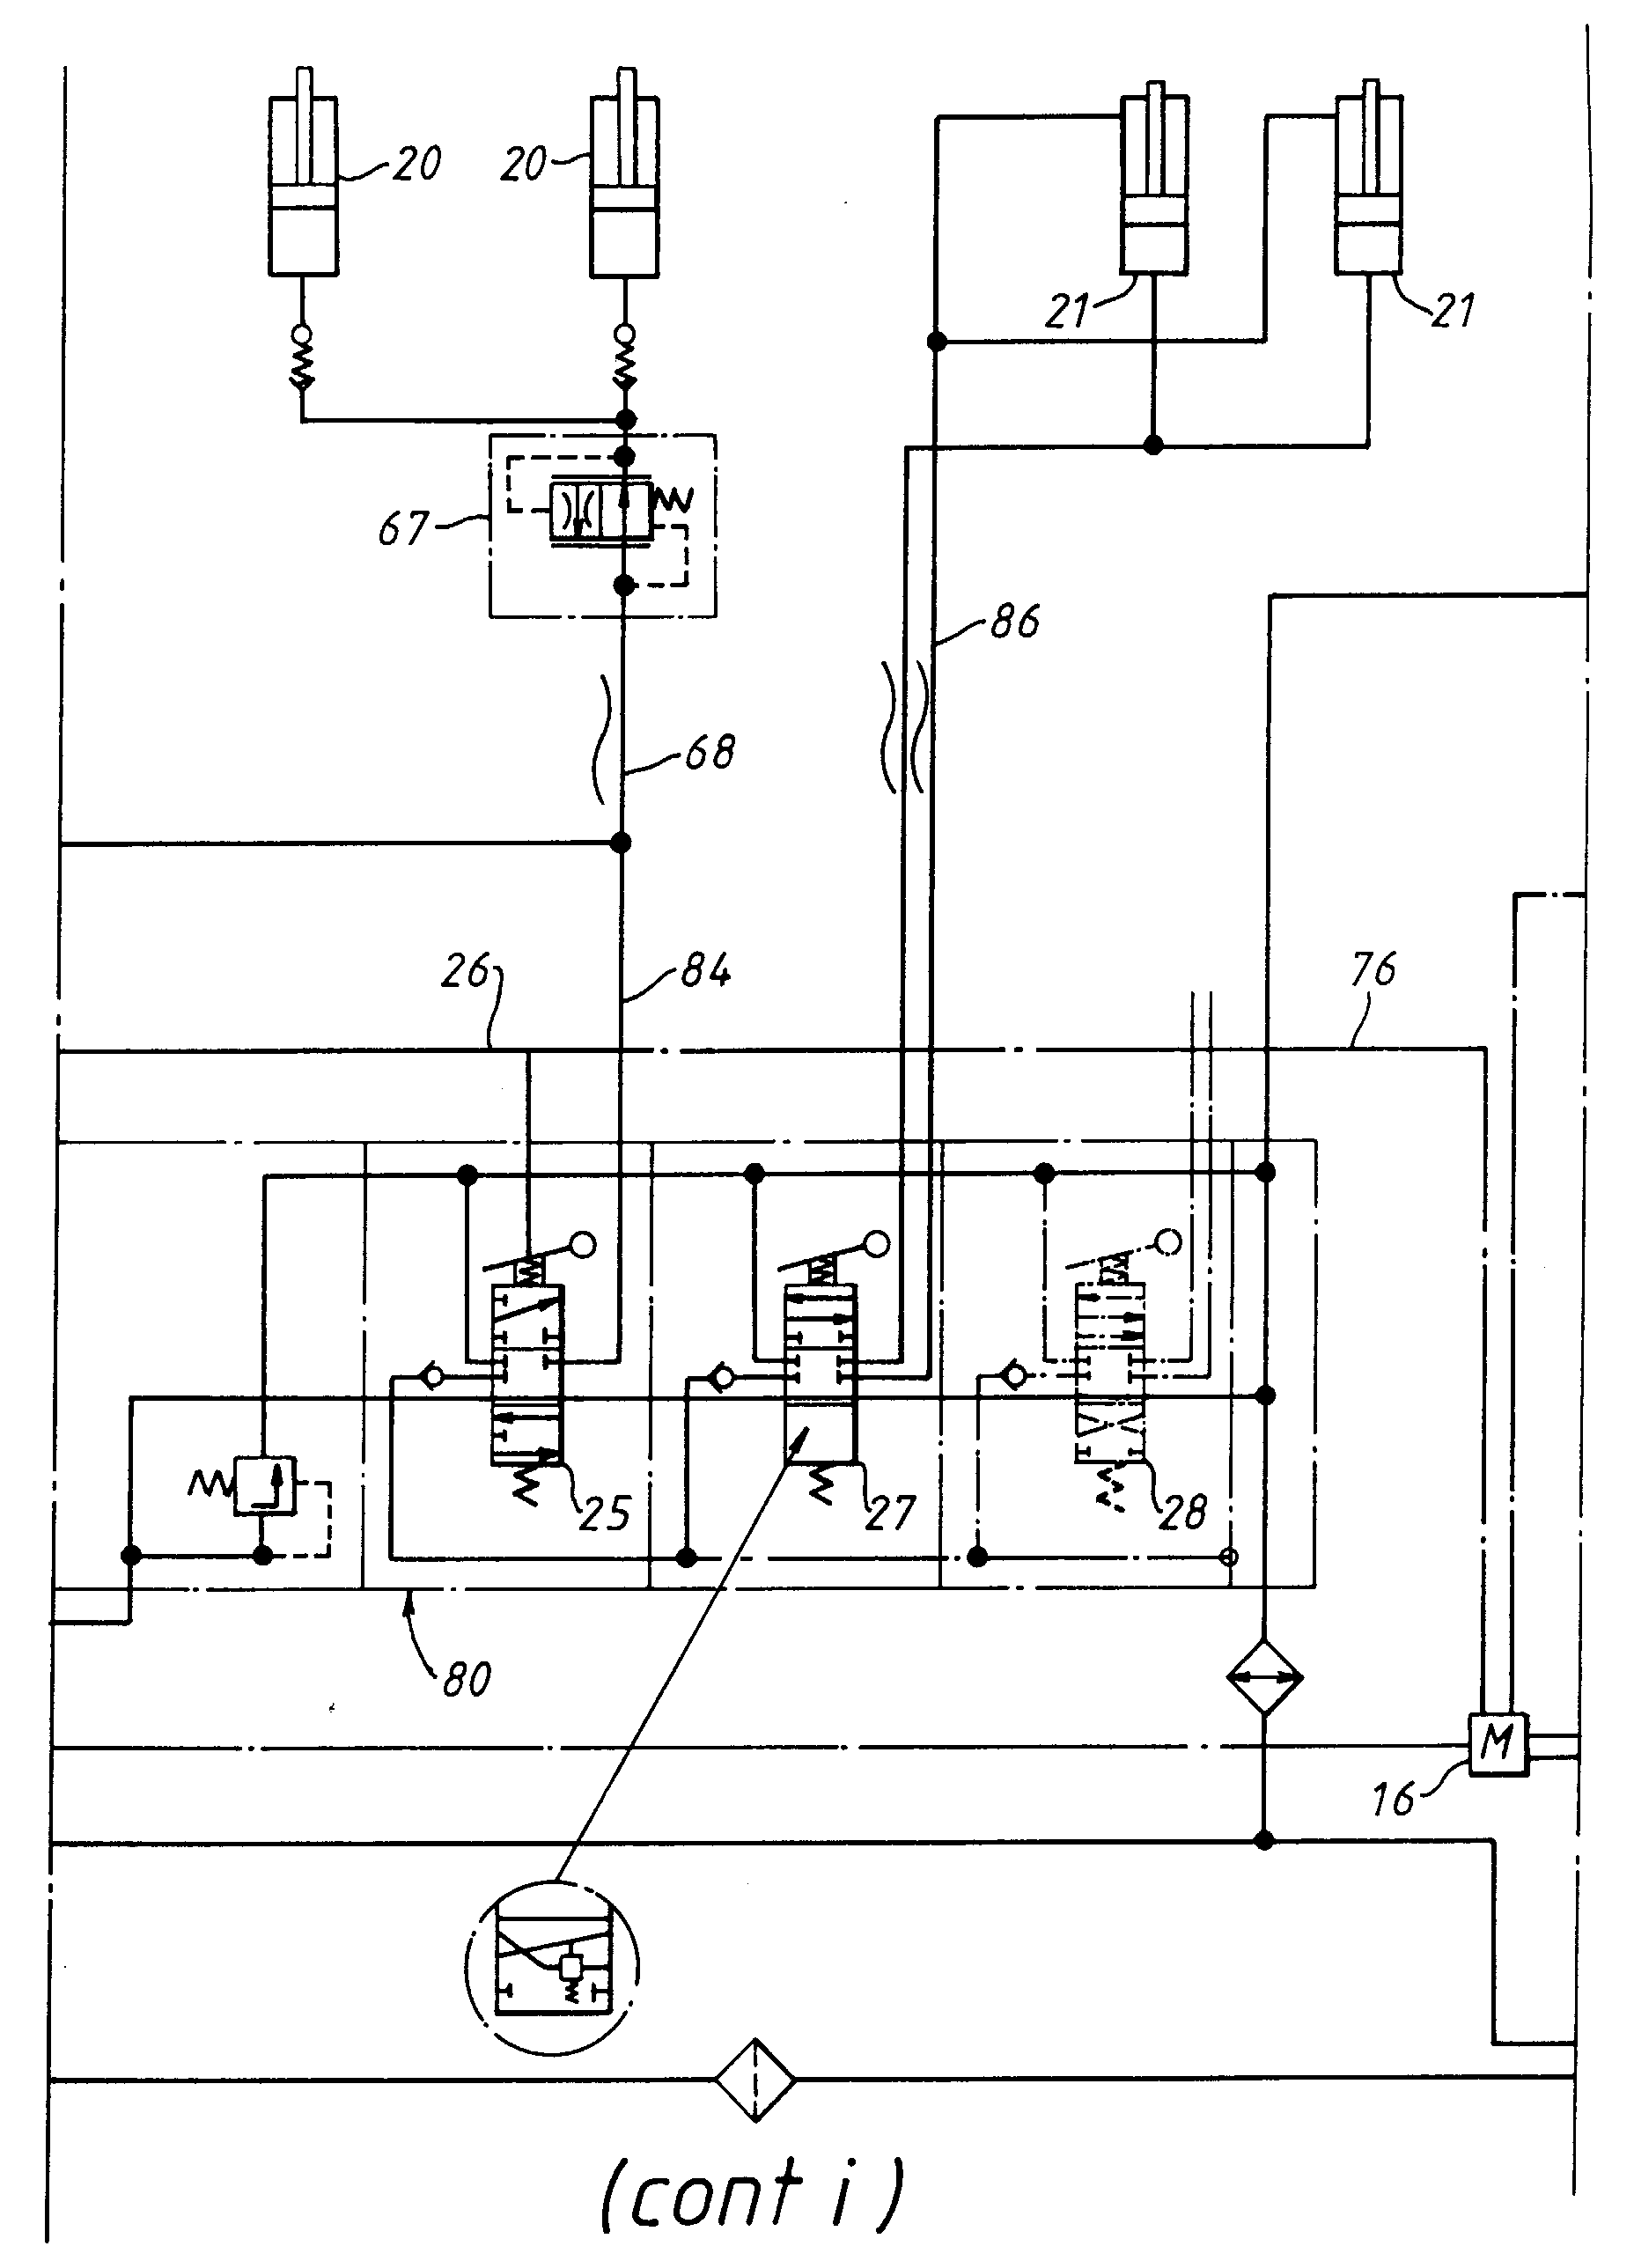 RepairGuideContent likewise File Symbol Electrical manipulation with electric motor on Vent additionally EP0644151B1 also Researchlabscatequip further Top Tools For An Electrical Engineers Toolbox. on hydraulic schematic